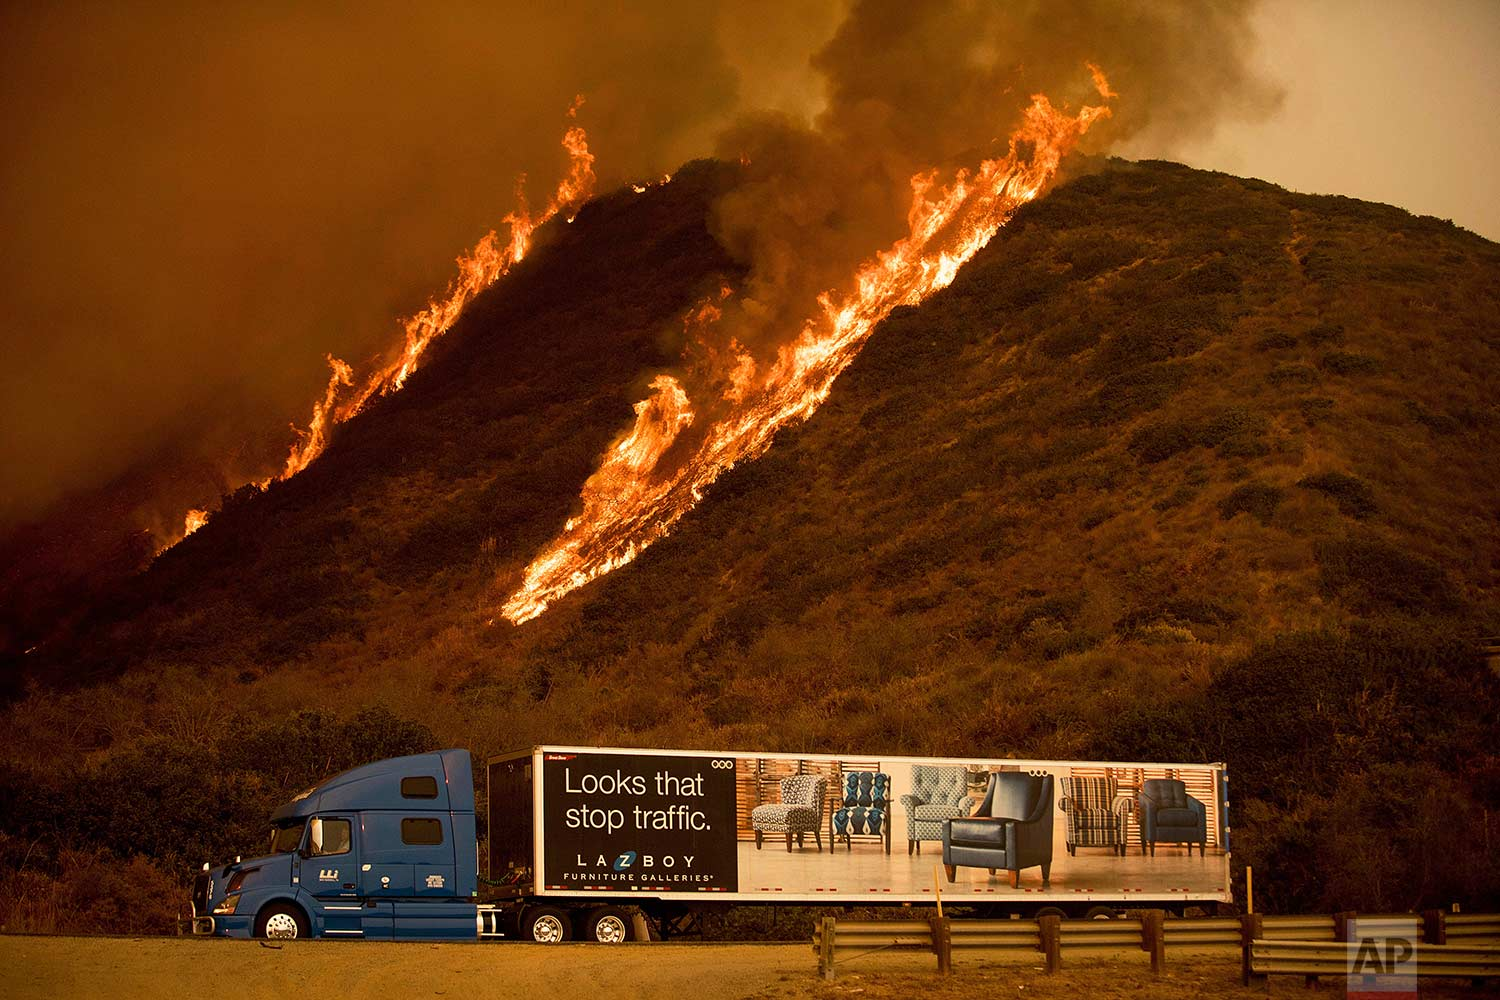 Flames from the Thomas fire burn on a hillside behind a truck on Highway 101 north of Ventura, Calif., on Wednesday, Dec. 6, 2017. (AP Photo/Noah Berger)